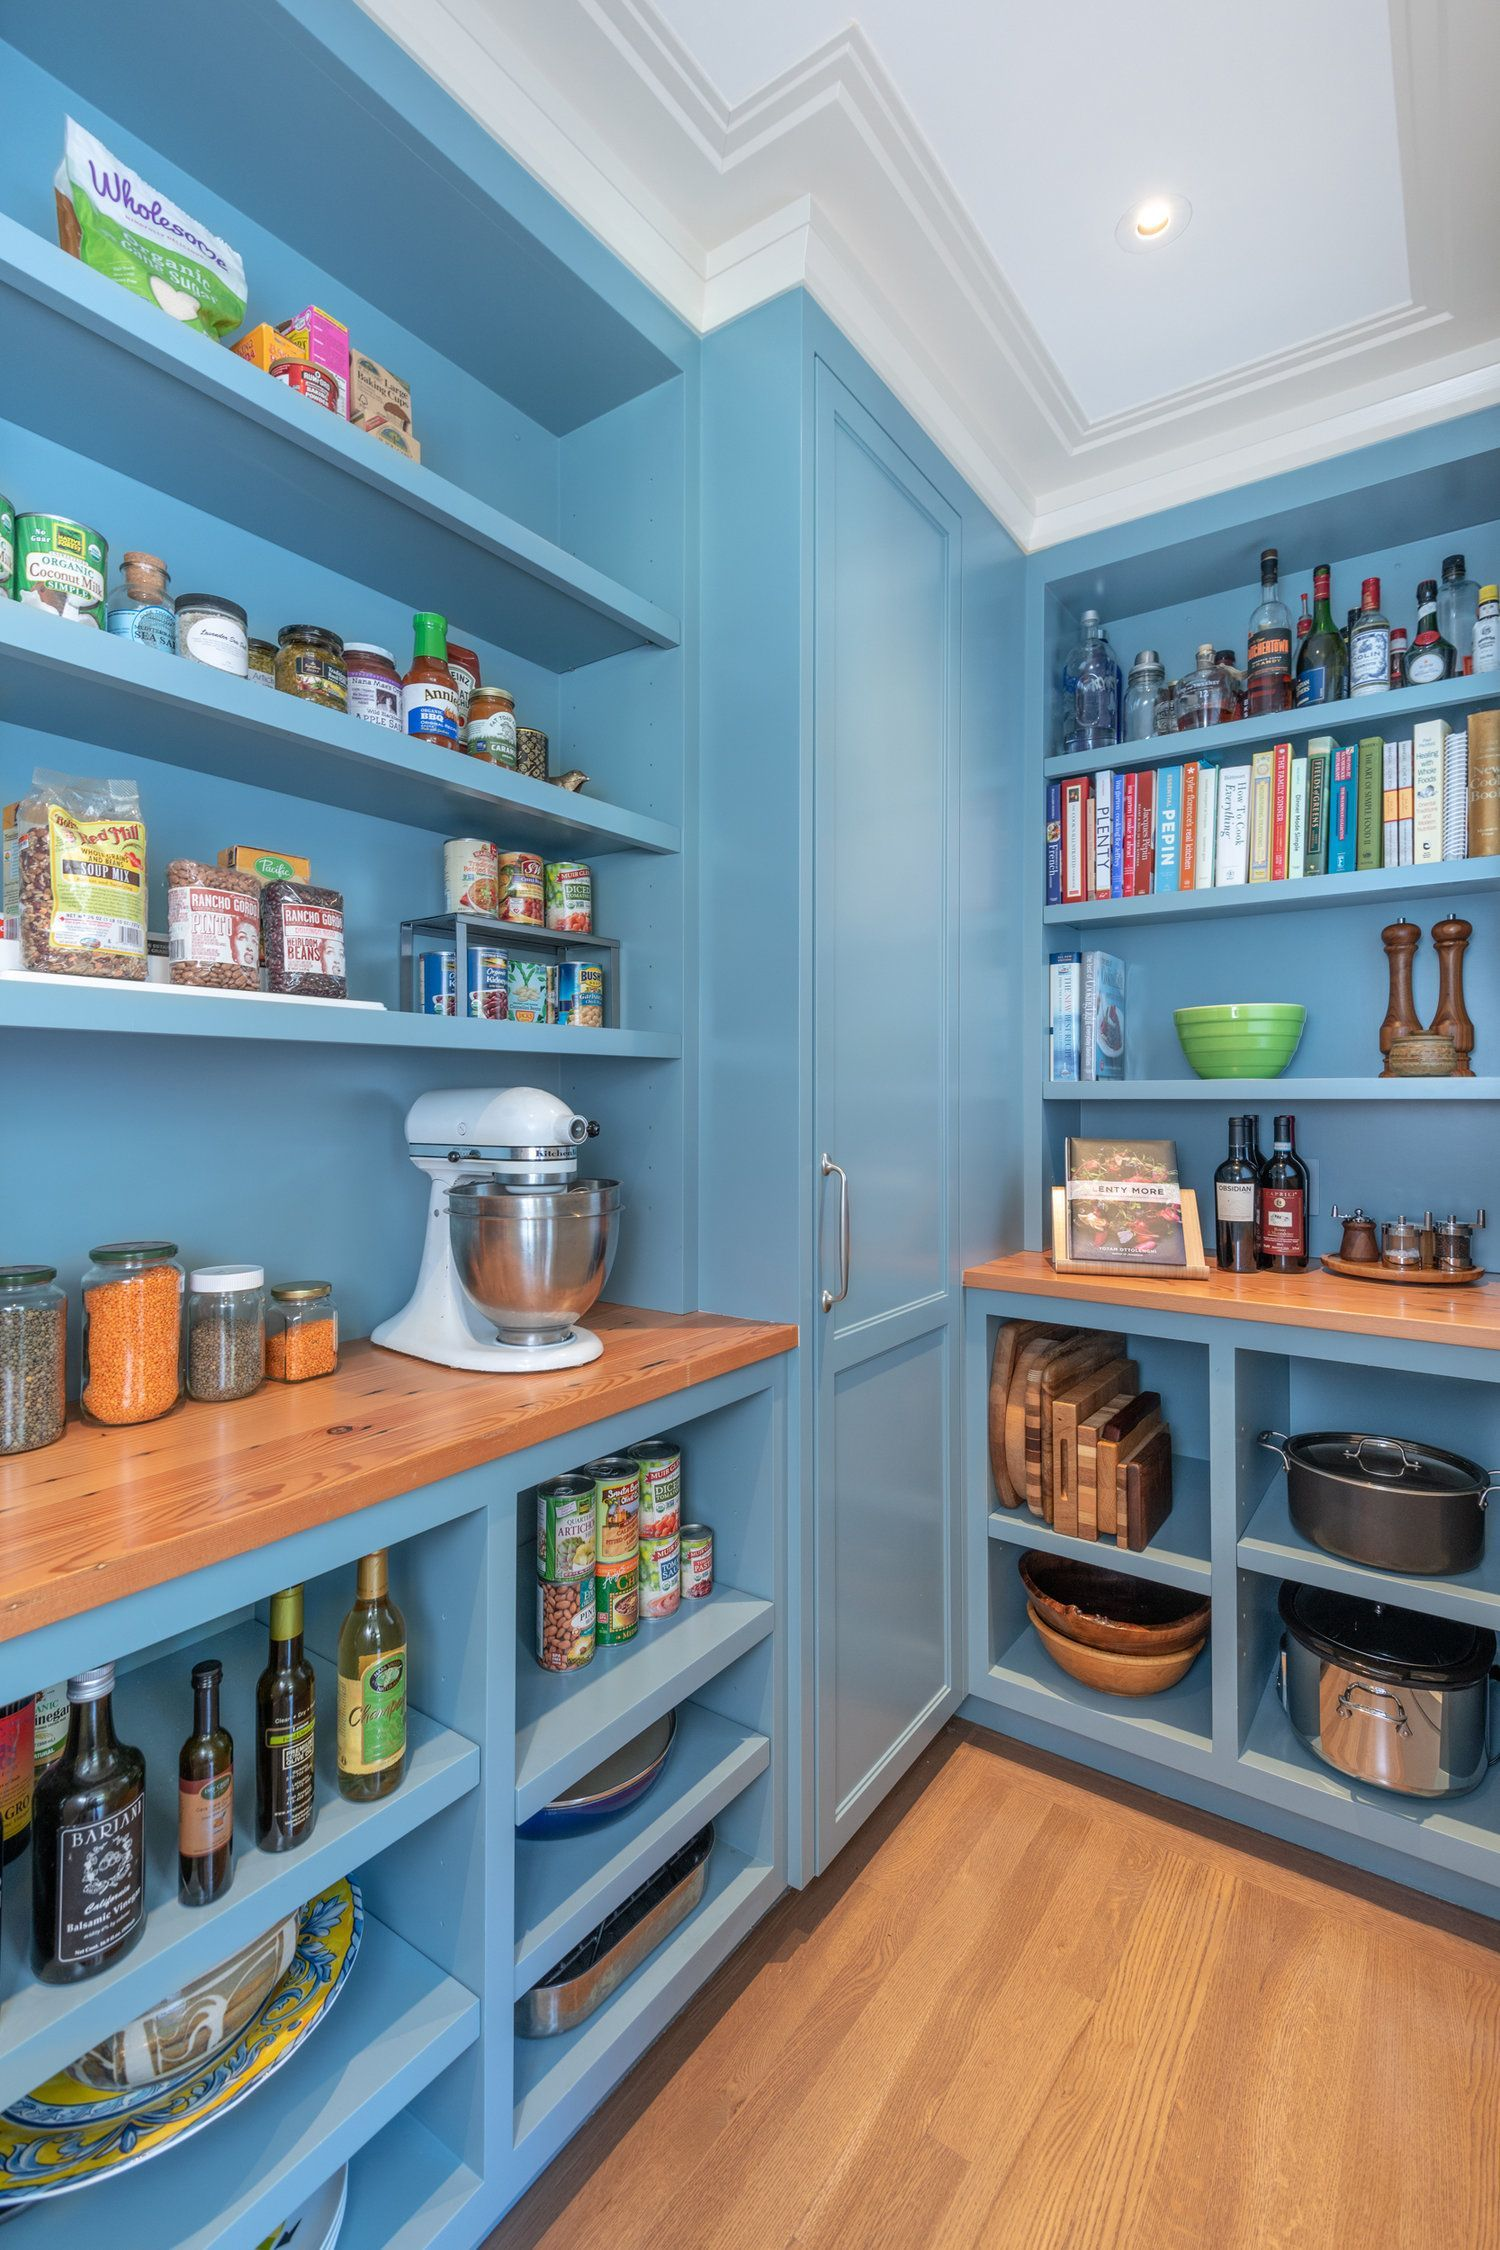 20 clever ways to maximize your pantry space in 2020 on clever ideas for diy kitchen cabinet organization tips for organizers id=83211